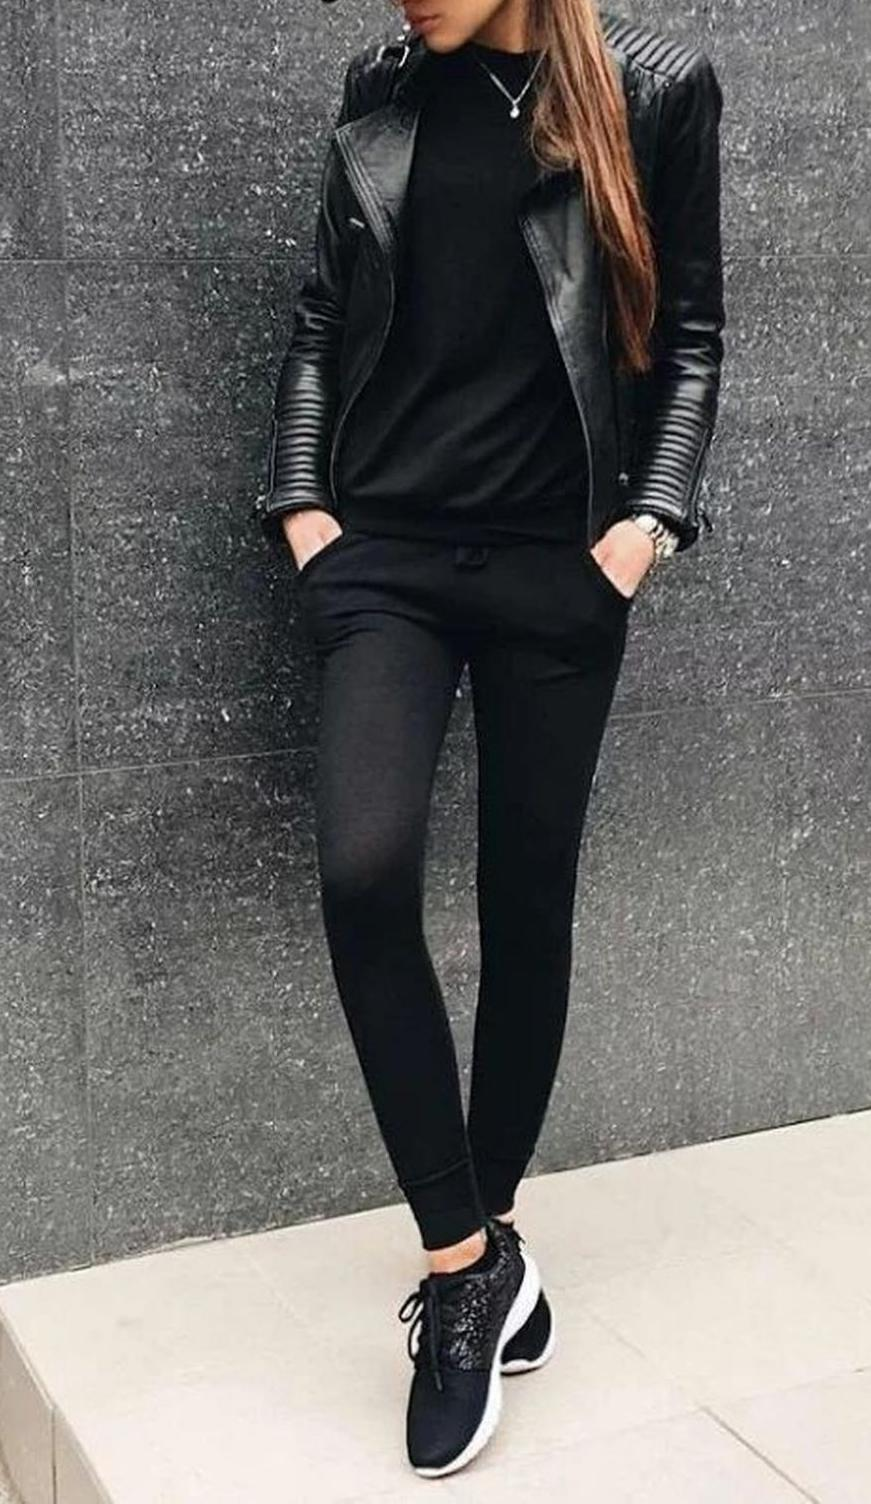 Stunning sports look with a leather jacket